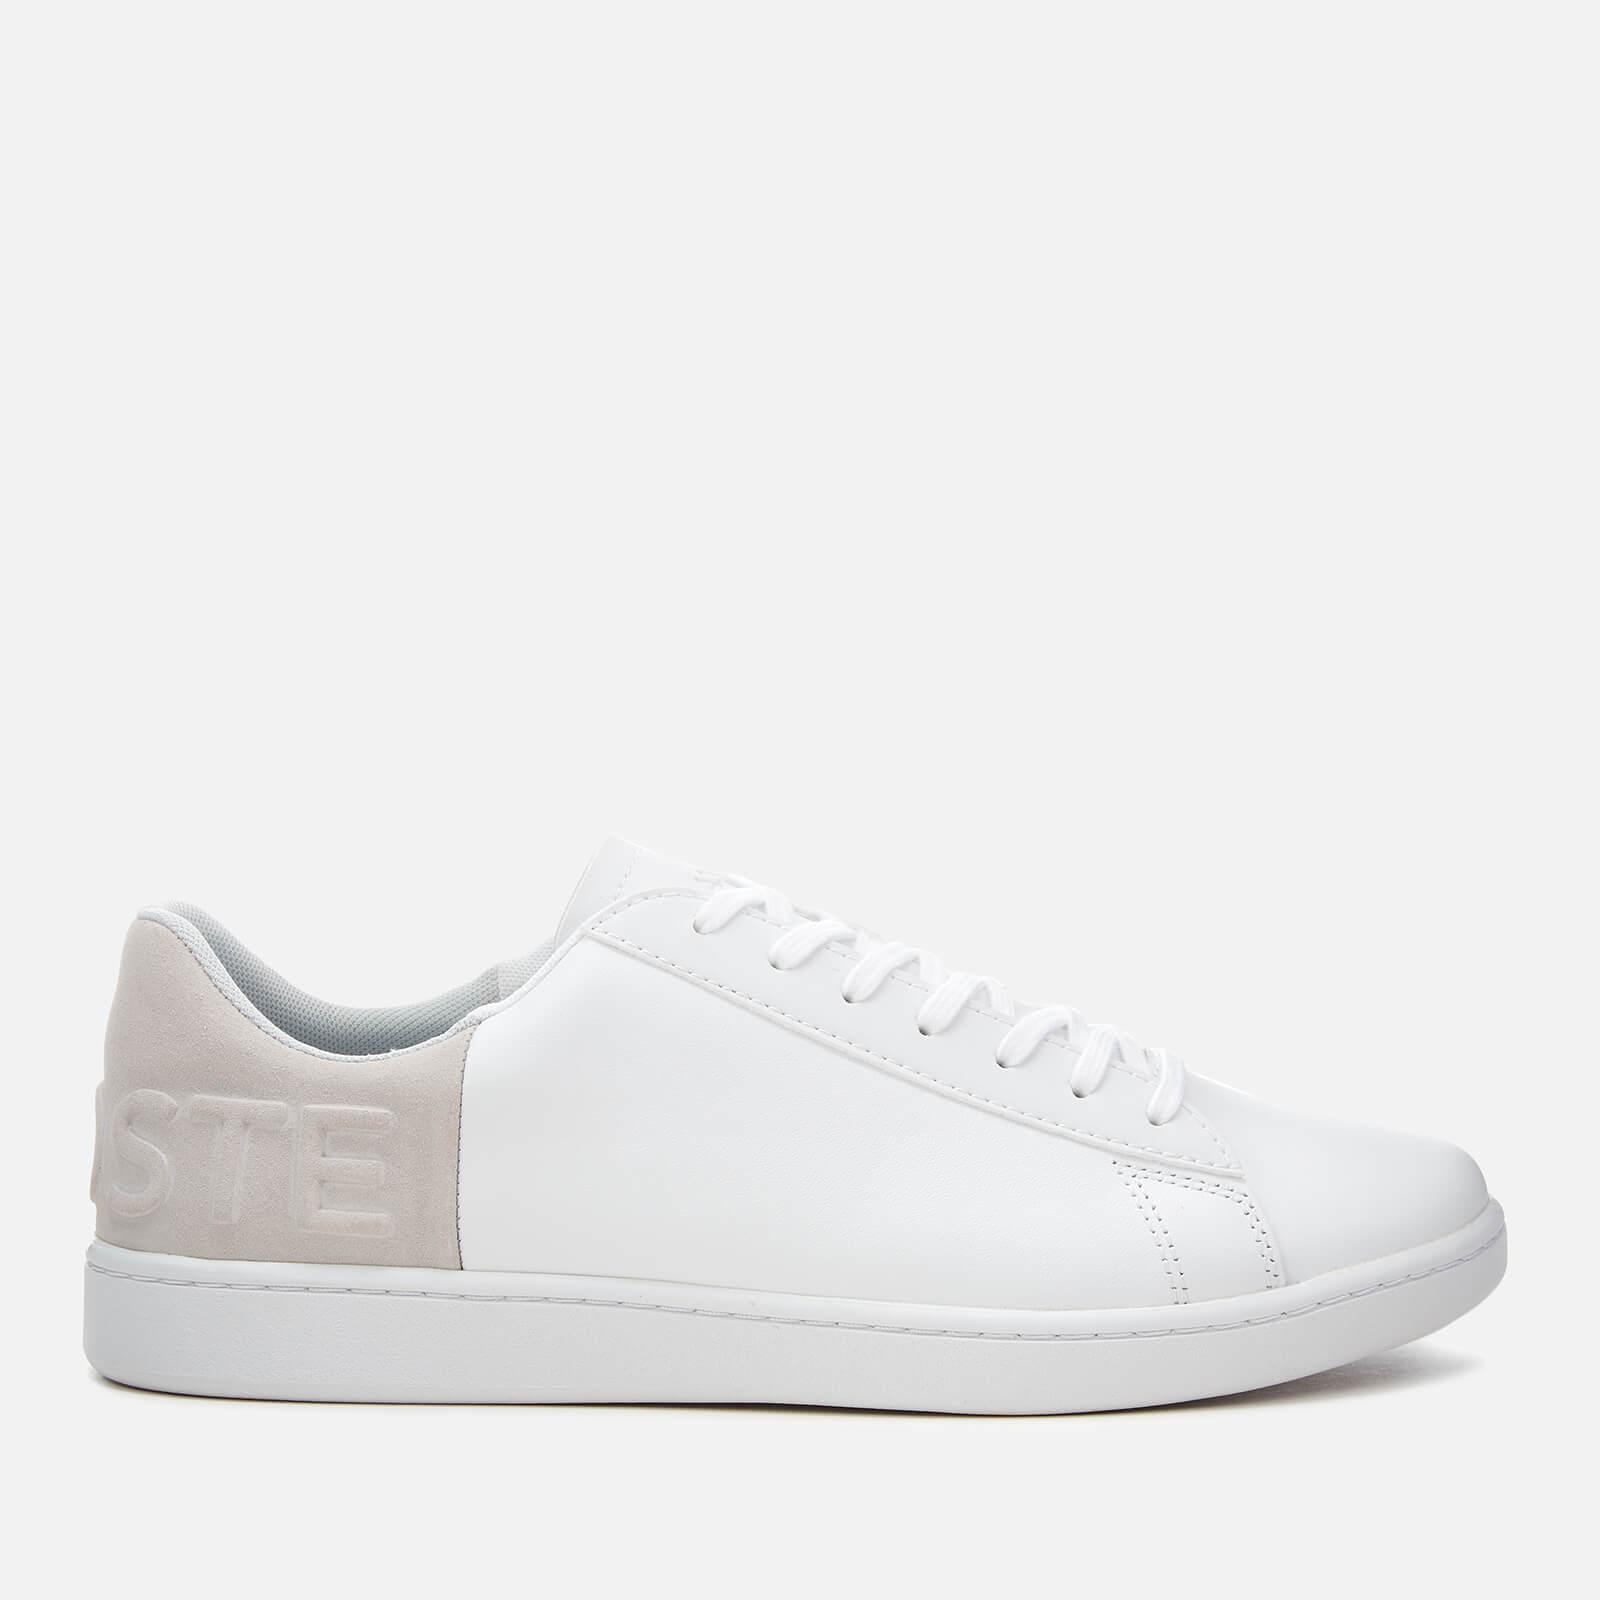 64154b8418 Lacoste Men's Carnaby Evo 318 6 Leather/Suede Trainers - White/Light Grey